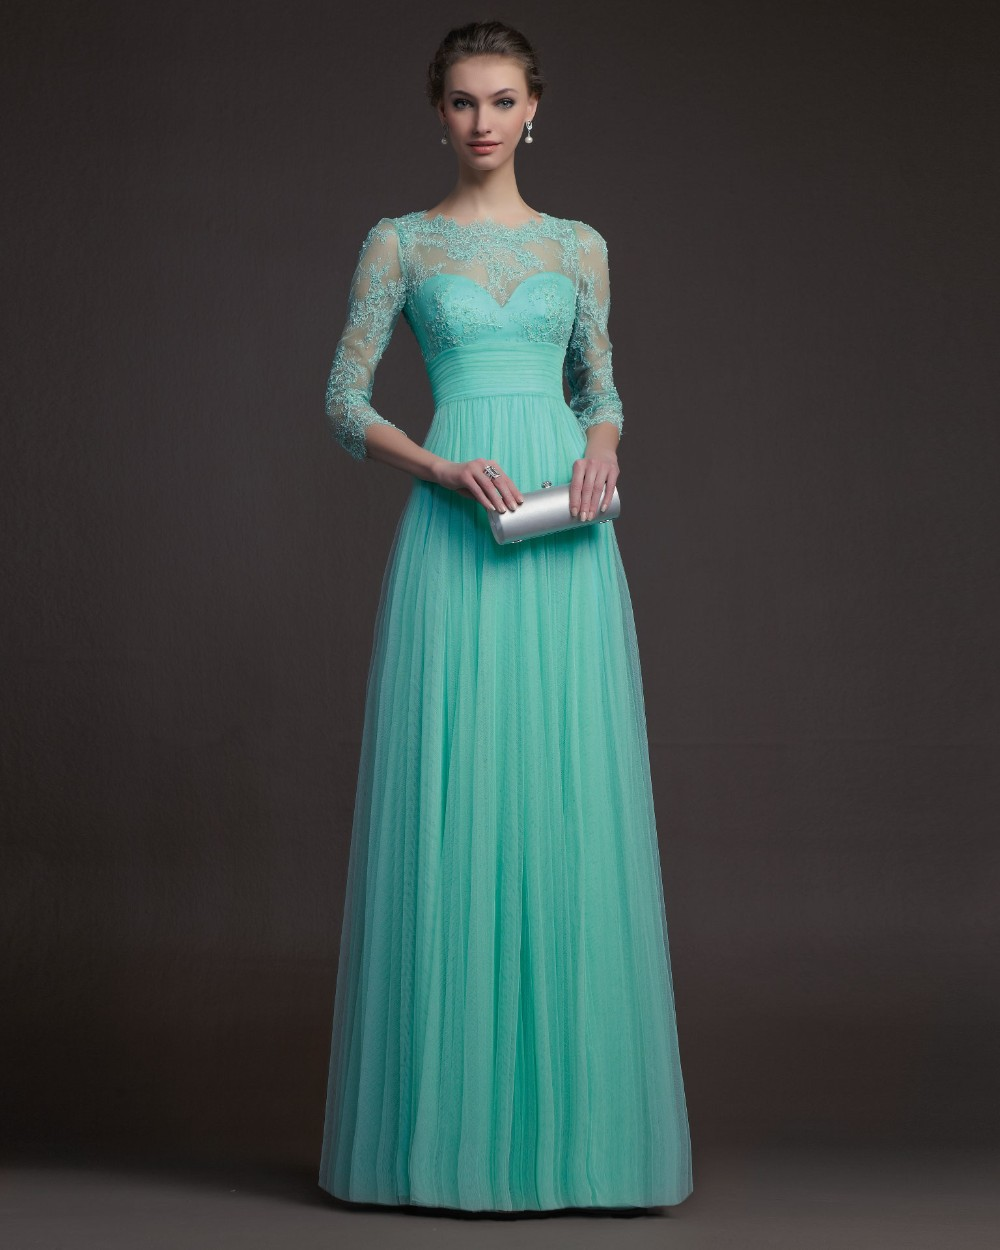 High Quality Lace Dress Turquoise-Buy Cheap Lace Dress Turquoise ...